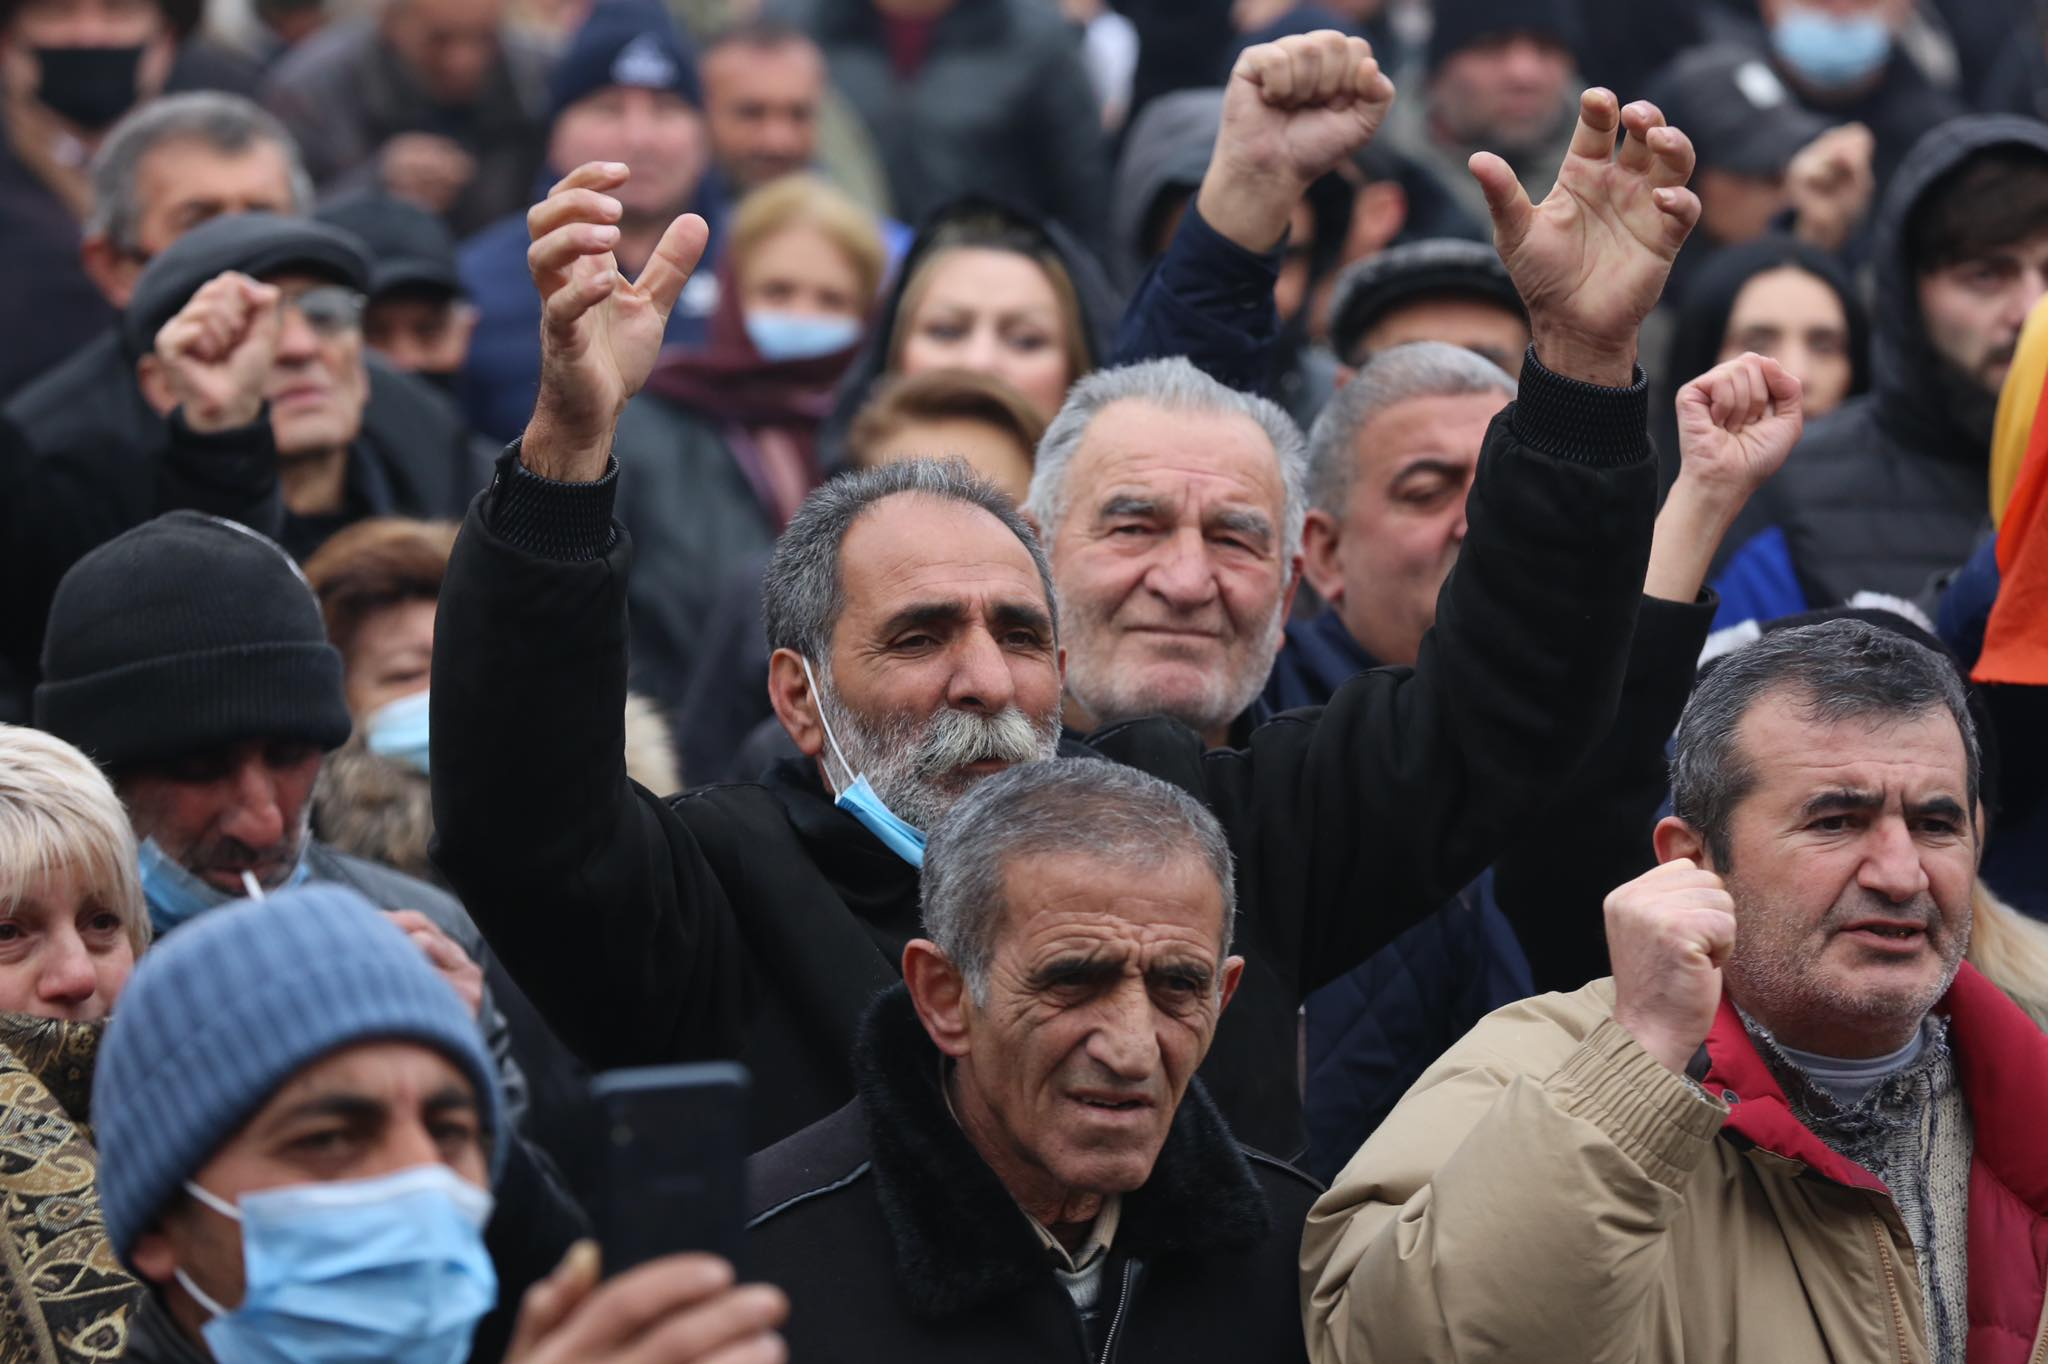 Lilit Makunts, Nikol Pashinyan, Azerbaijan, Armenia, return of prisoners of war, violation of points of the trilateral statement, talks in Moscow, January 11, failure for Armenia, opposition opinion, response of the ruling bloc,